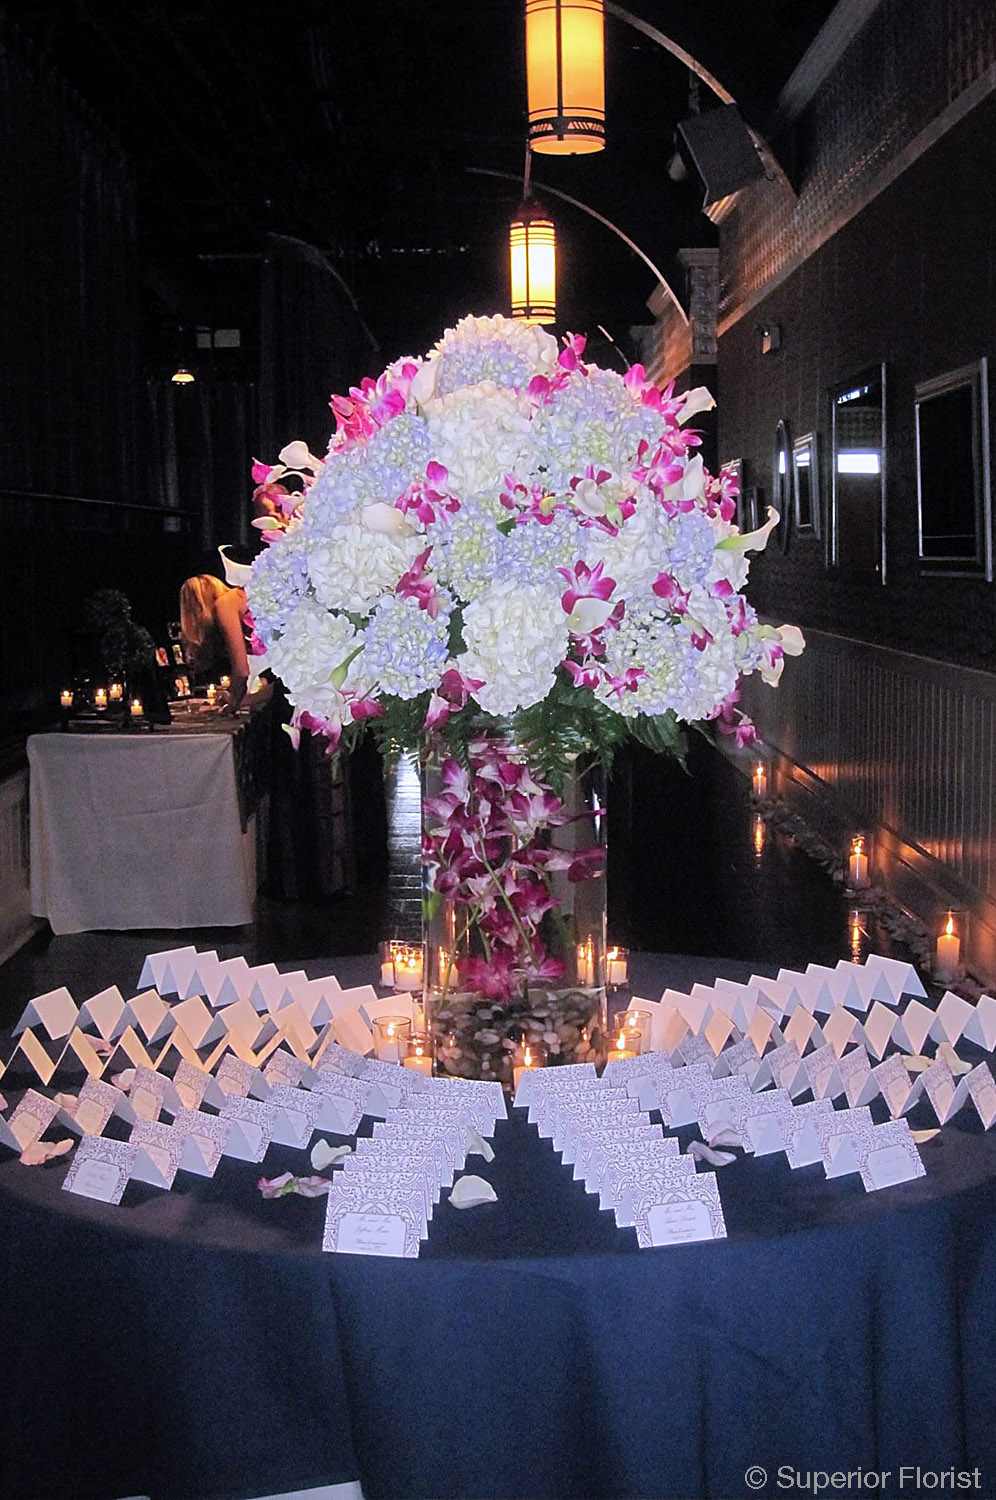 Superior Florist – Weddings – Escort Tables: White and light blue Hydrangeas dotted with Dendrobiums orchids in cylinder glass vase. Variegated Dendrobium orchids submerged in vase with 